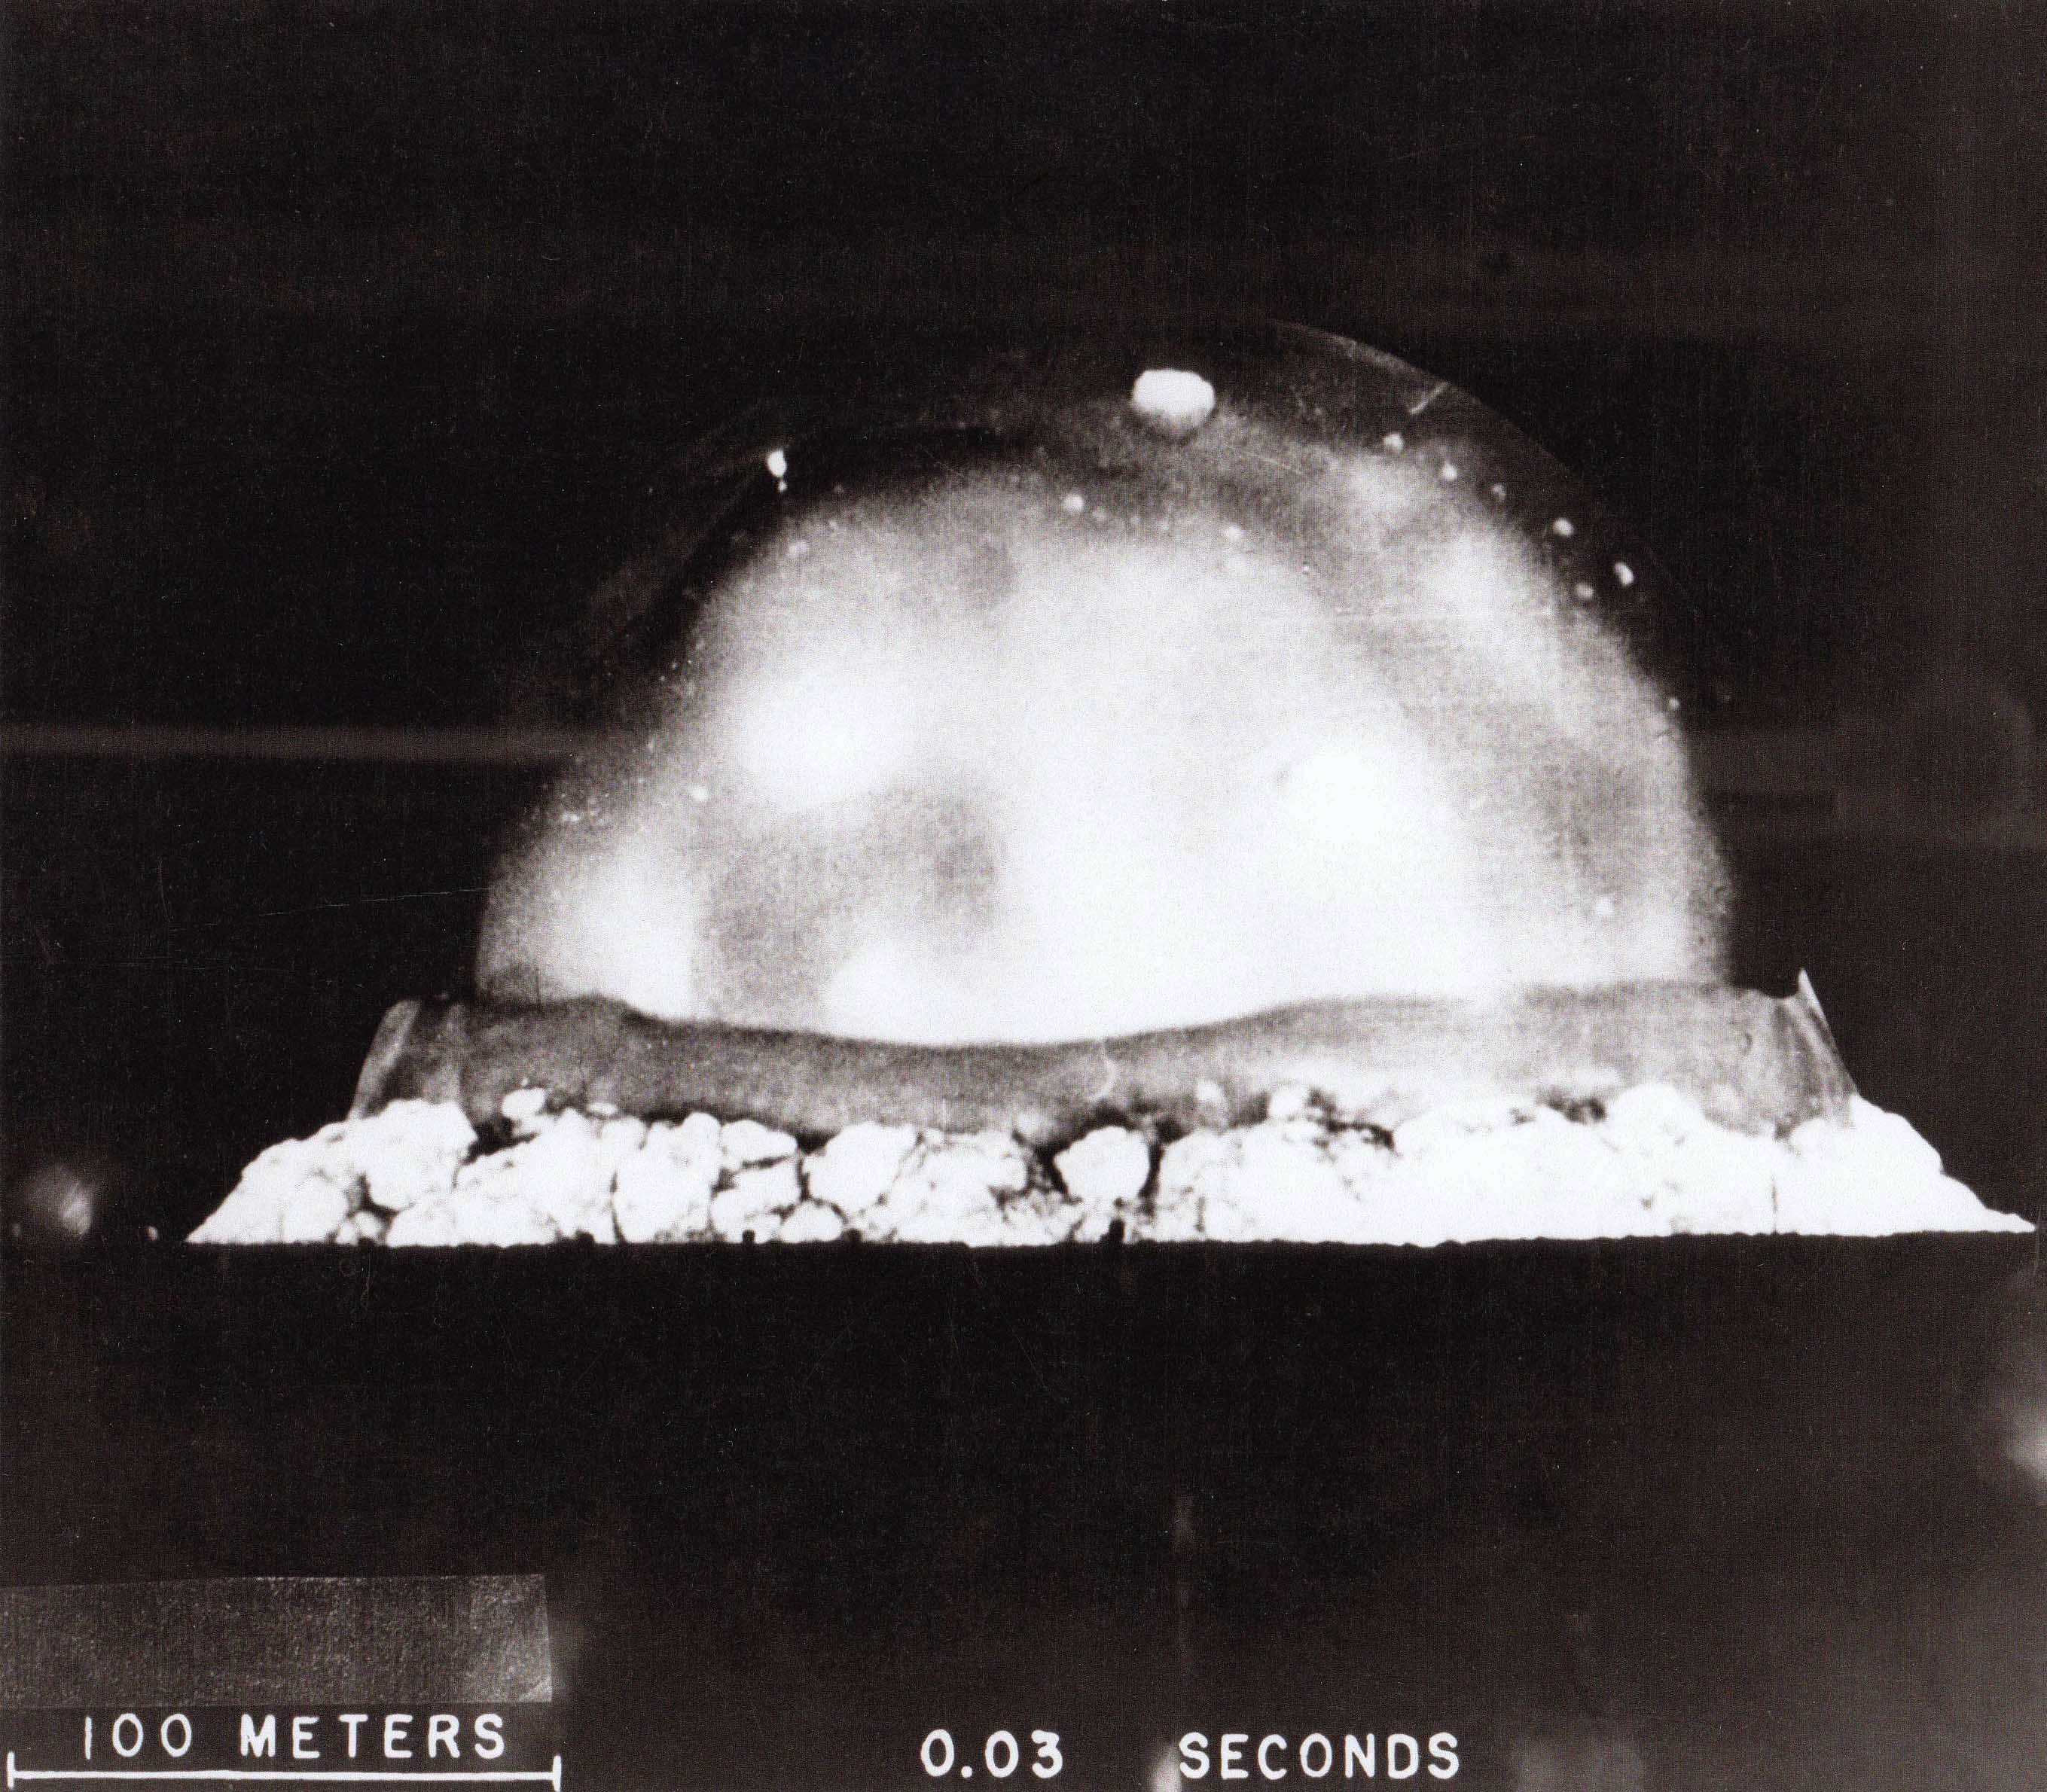 Trinity Detonation .003 seconds